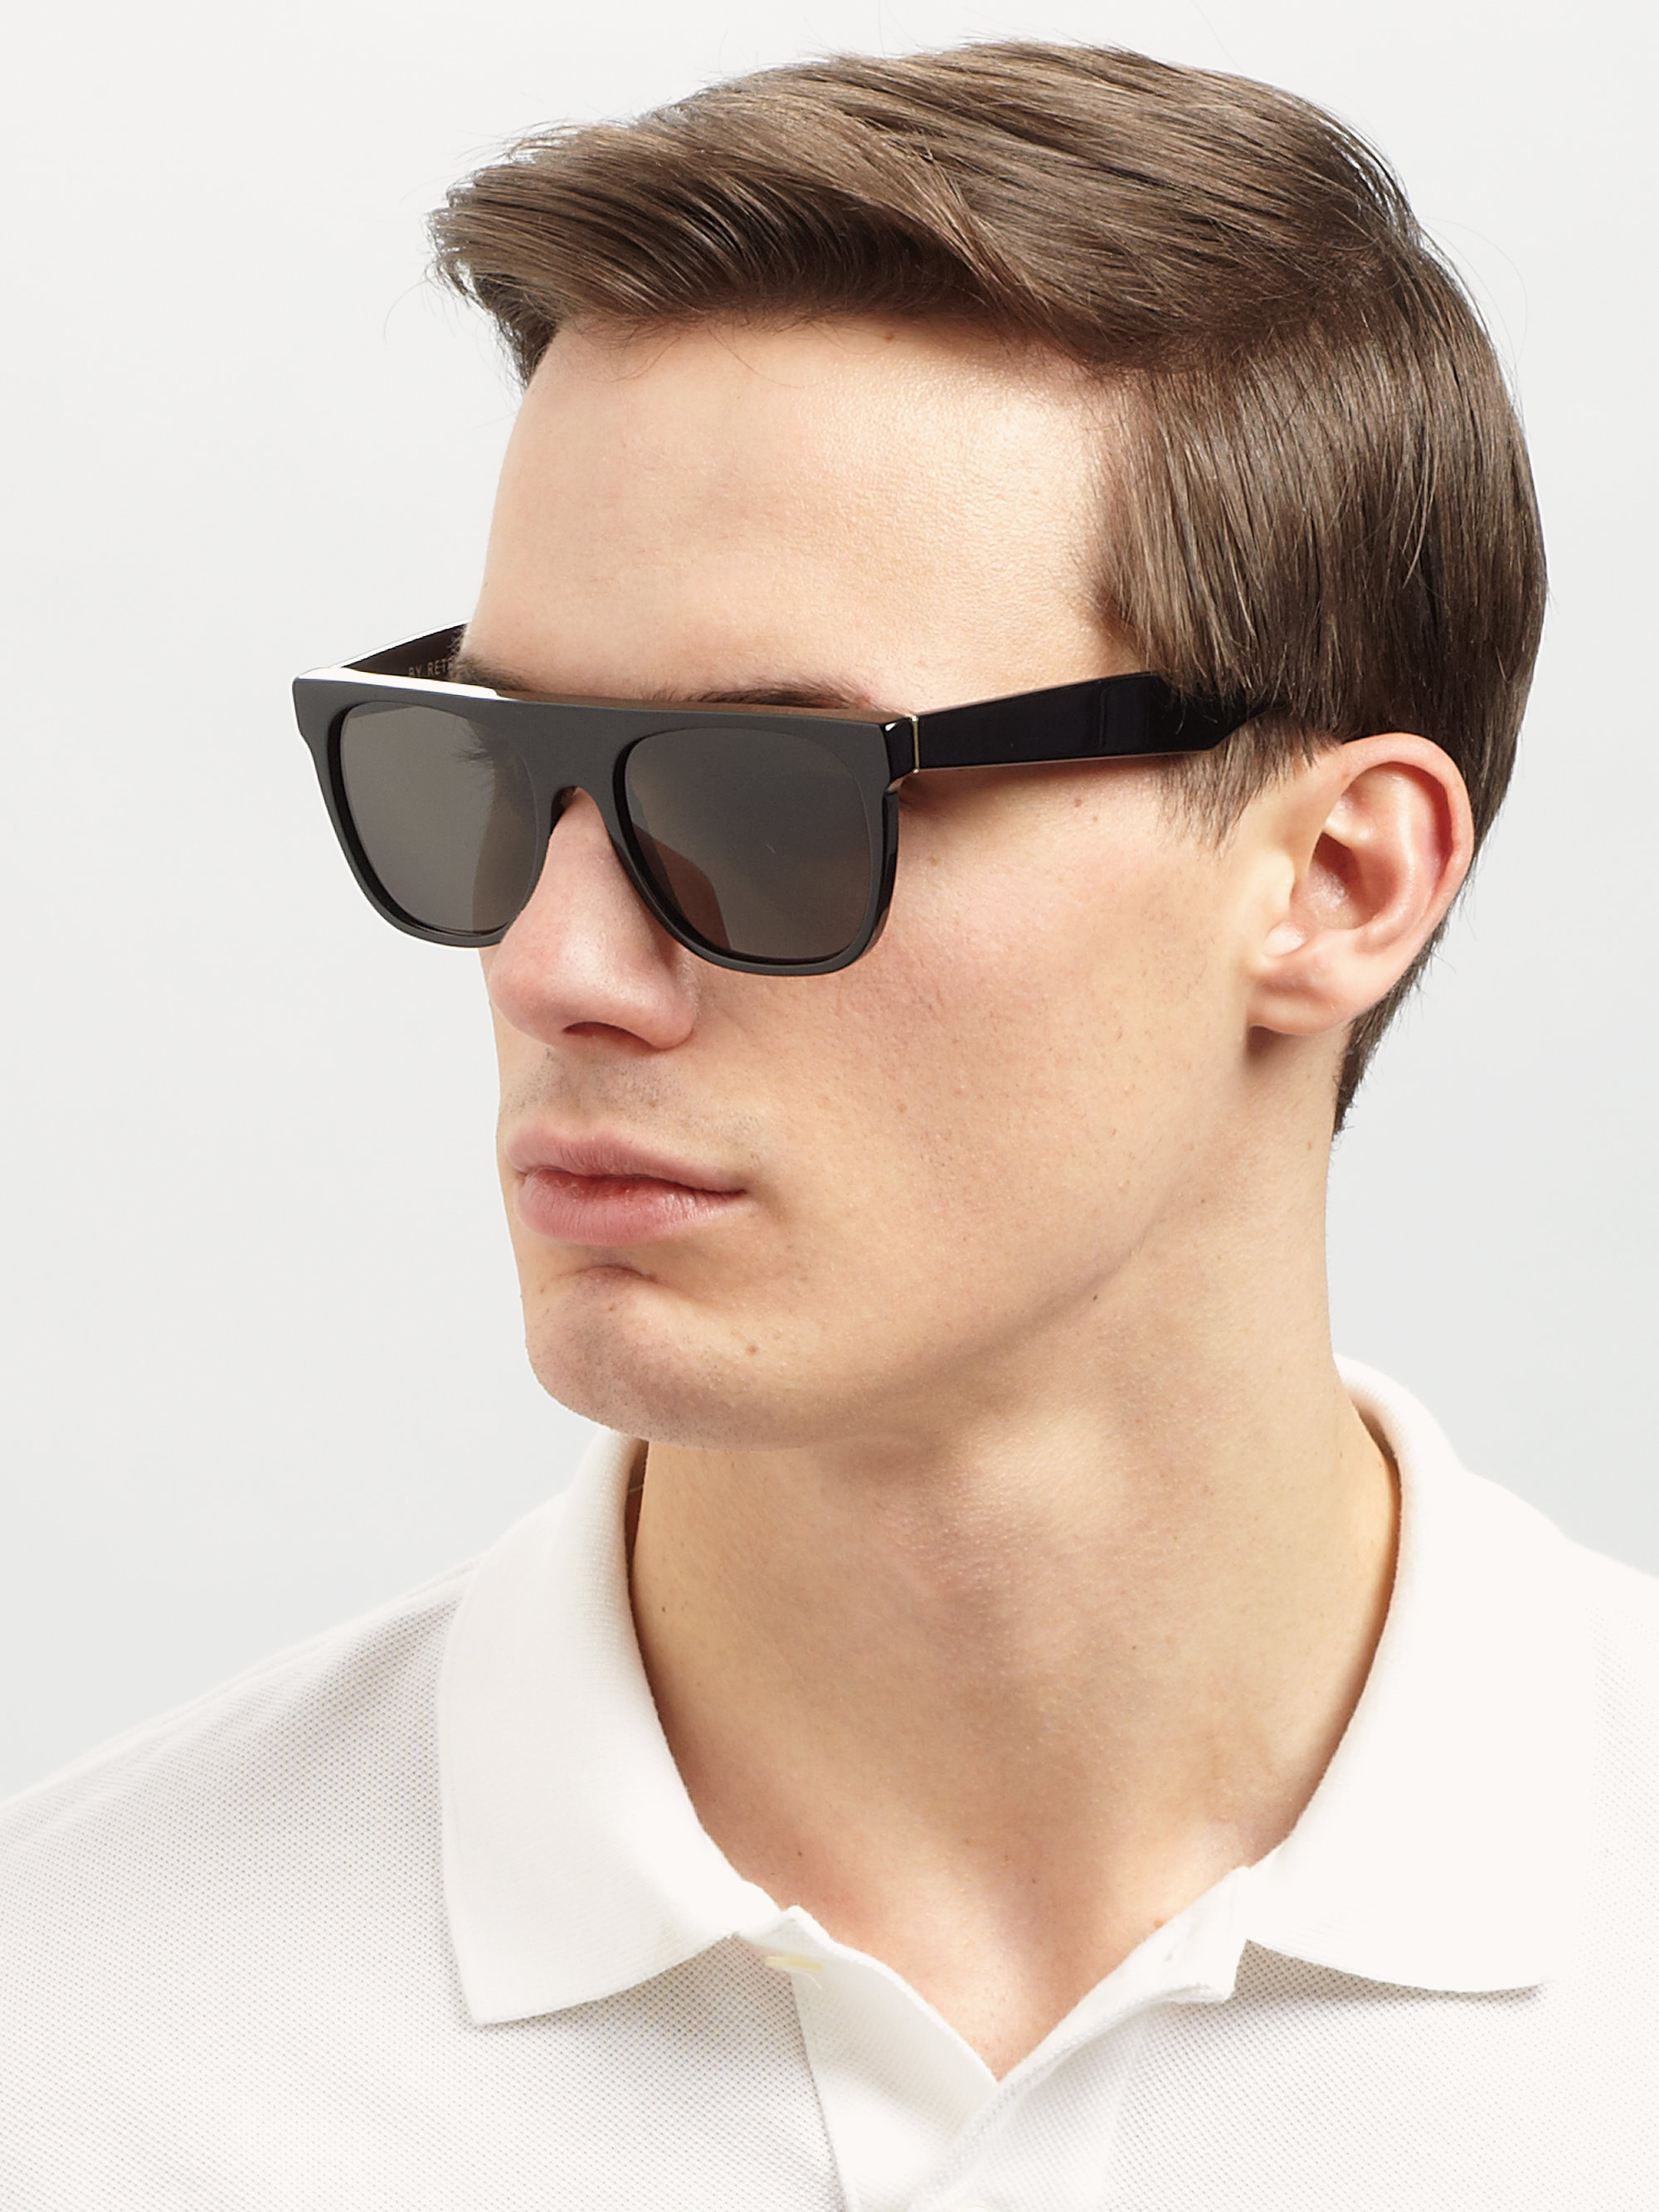 Sunglasses for Men. It's hard to pick our favorite sunglasses, but these are some of our top picks for our men's styles. You'll find polarized and mirrored lenses, and frames that are classic, trendy, or somewhere in between. All perfect for whatever view is in sight.